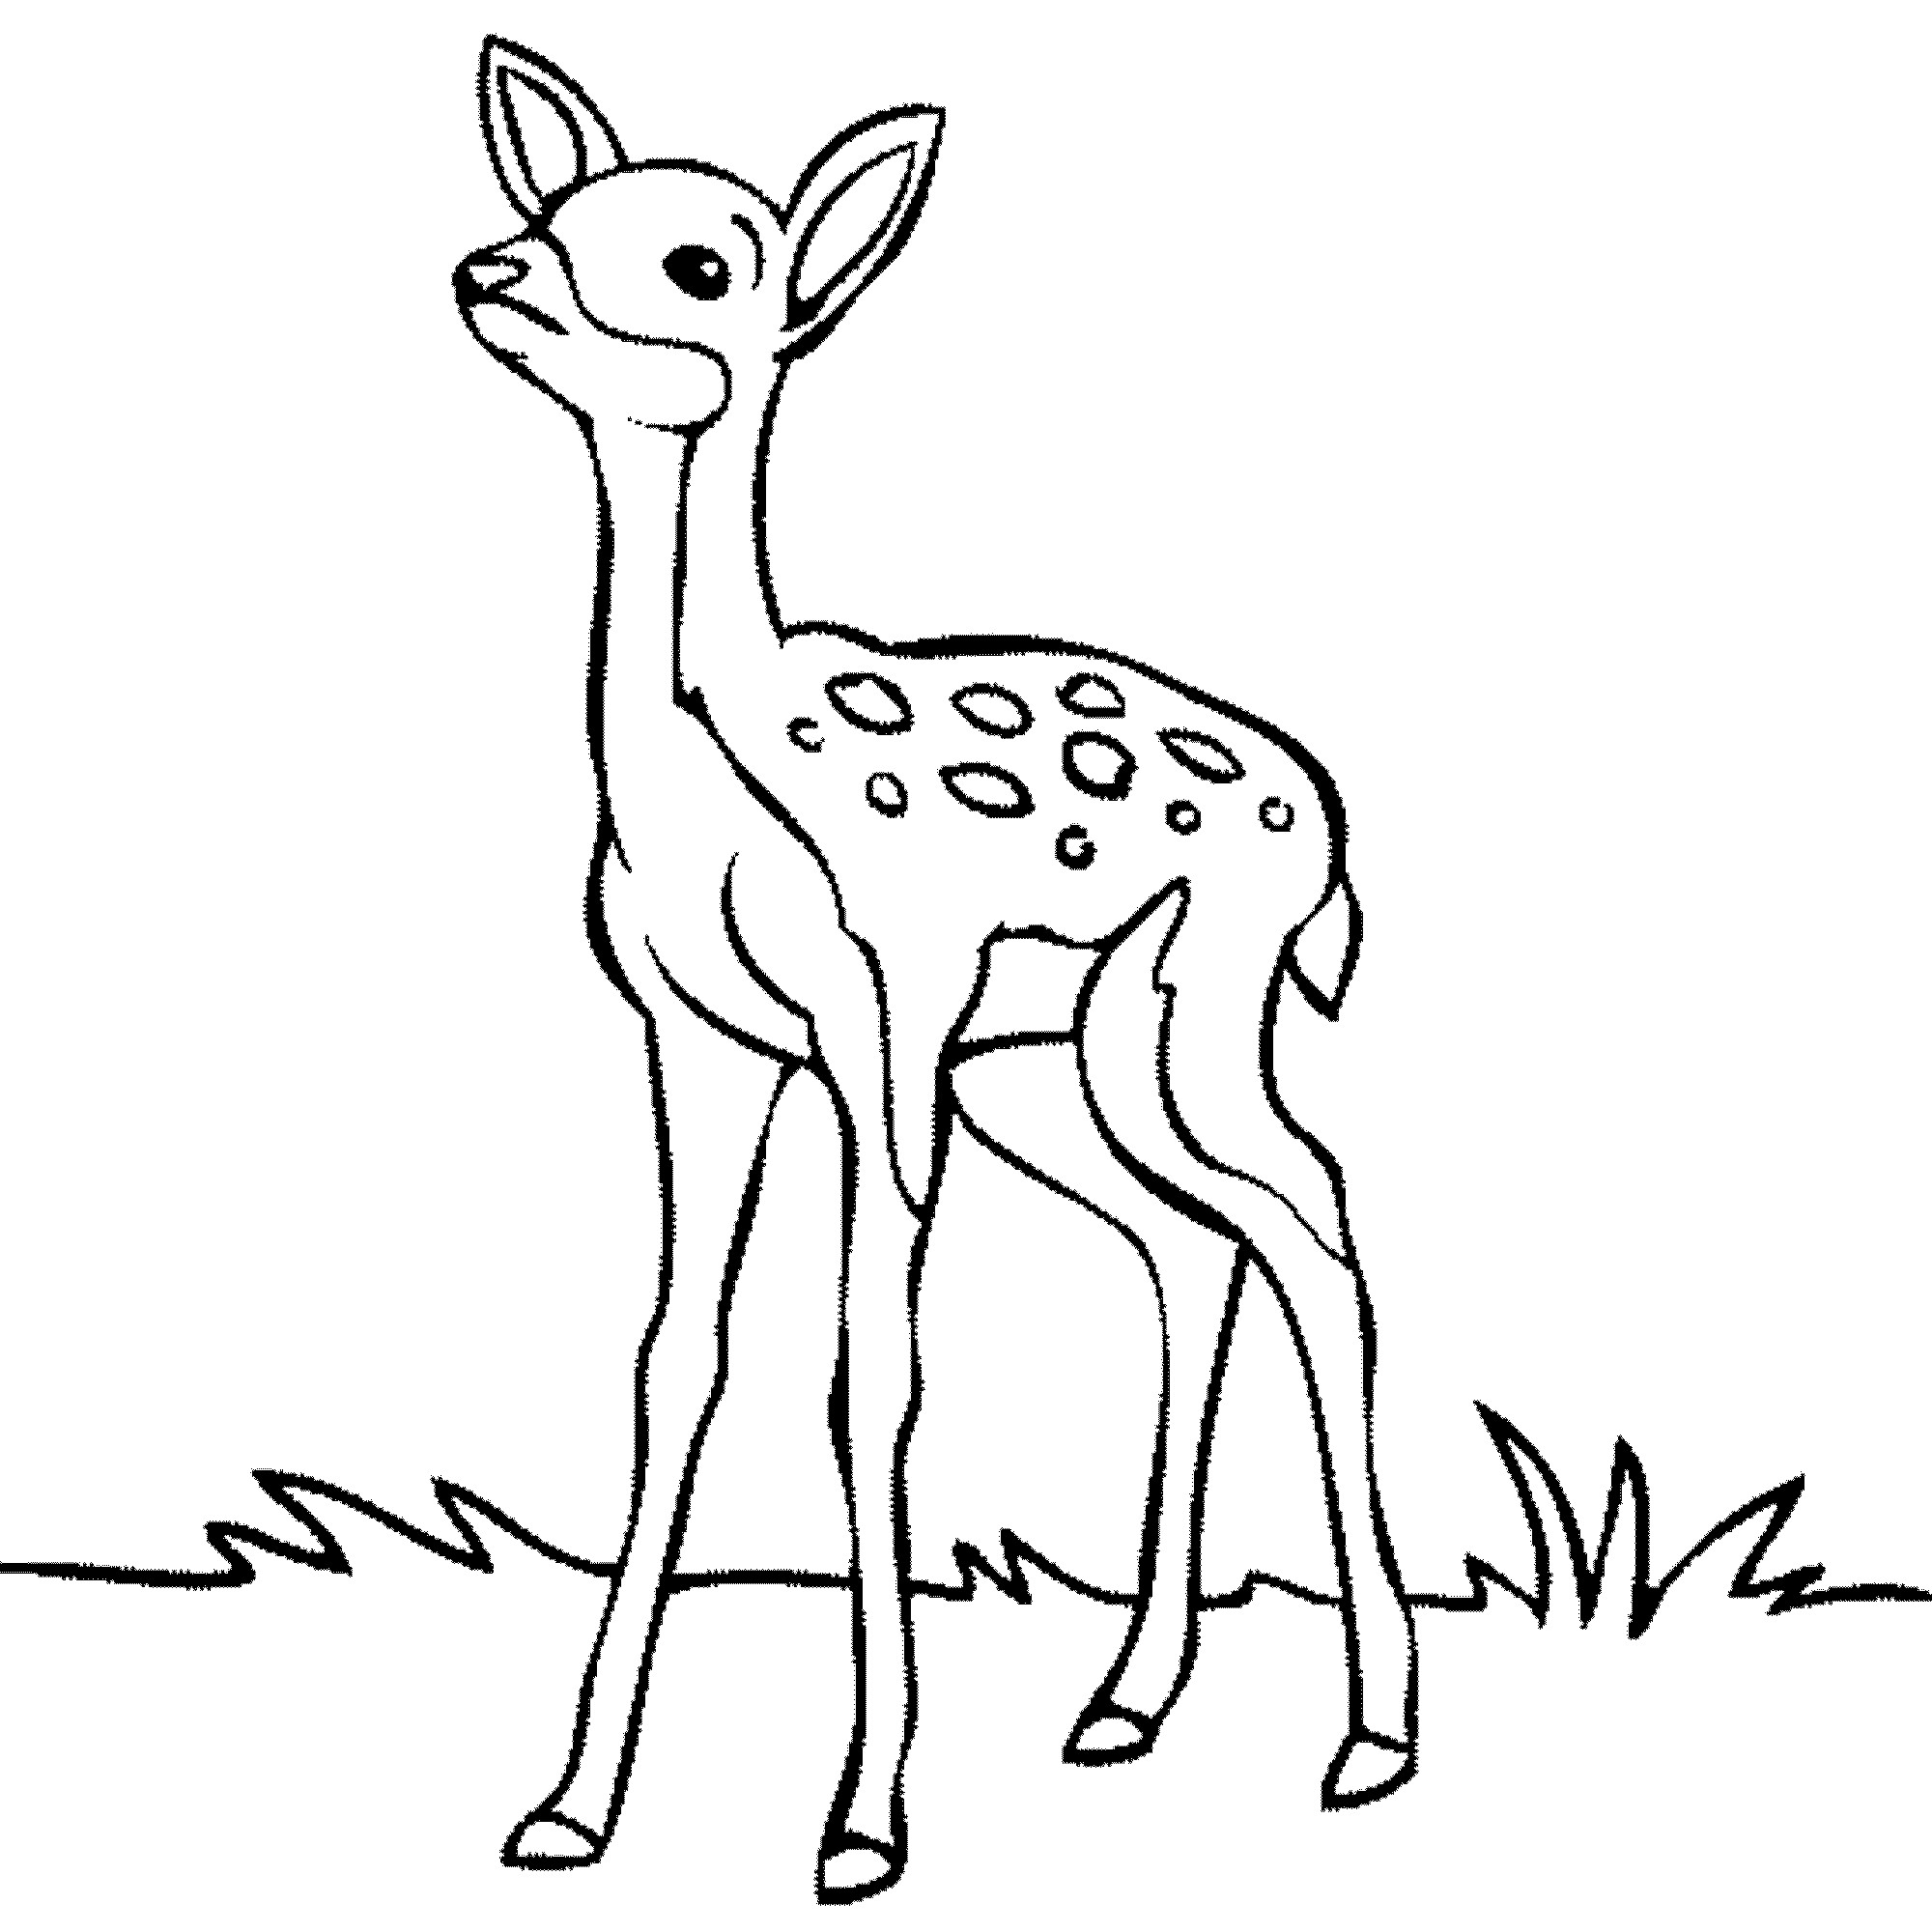 outline for coloring deer face coloring pages at getcoloringscom free coloring for outline